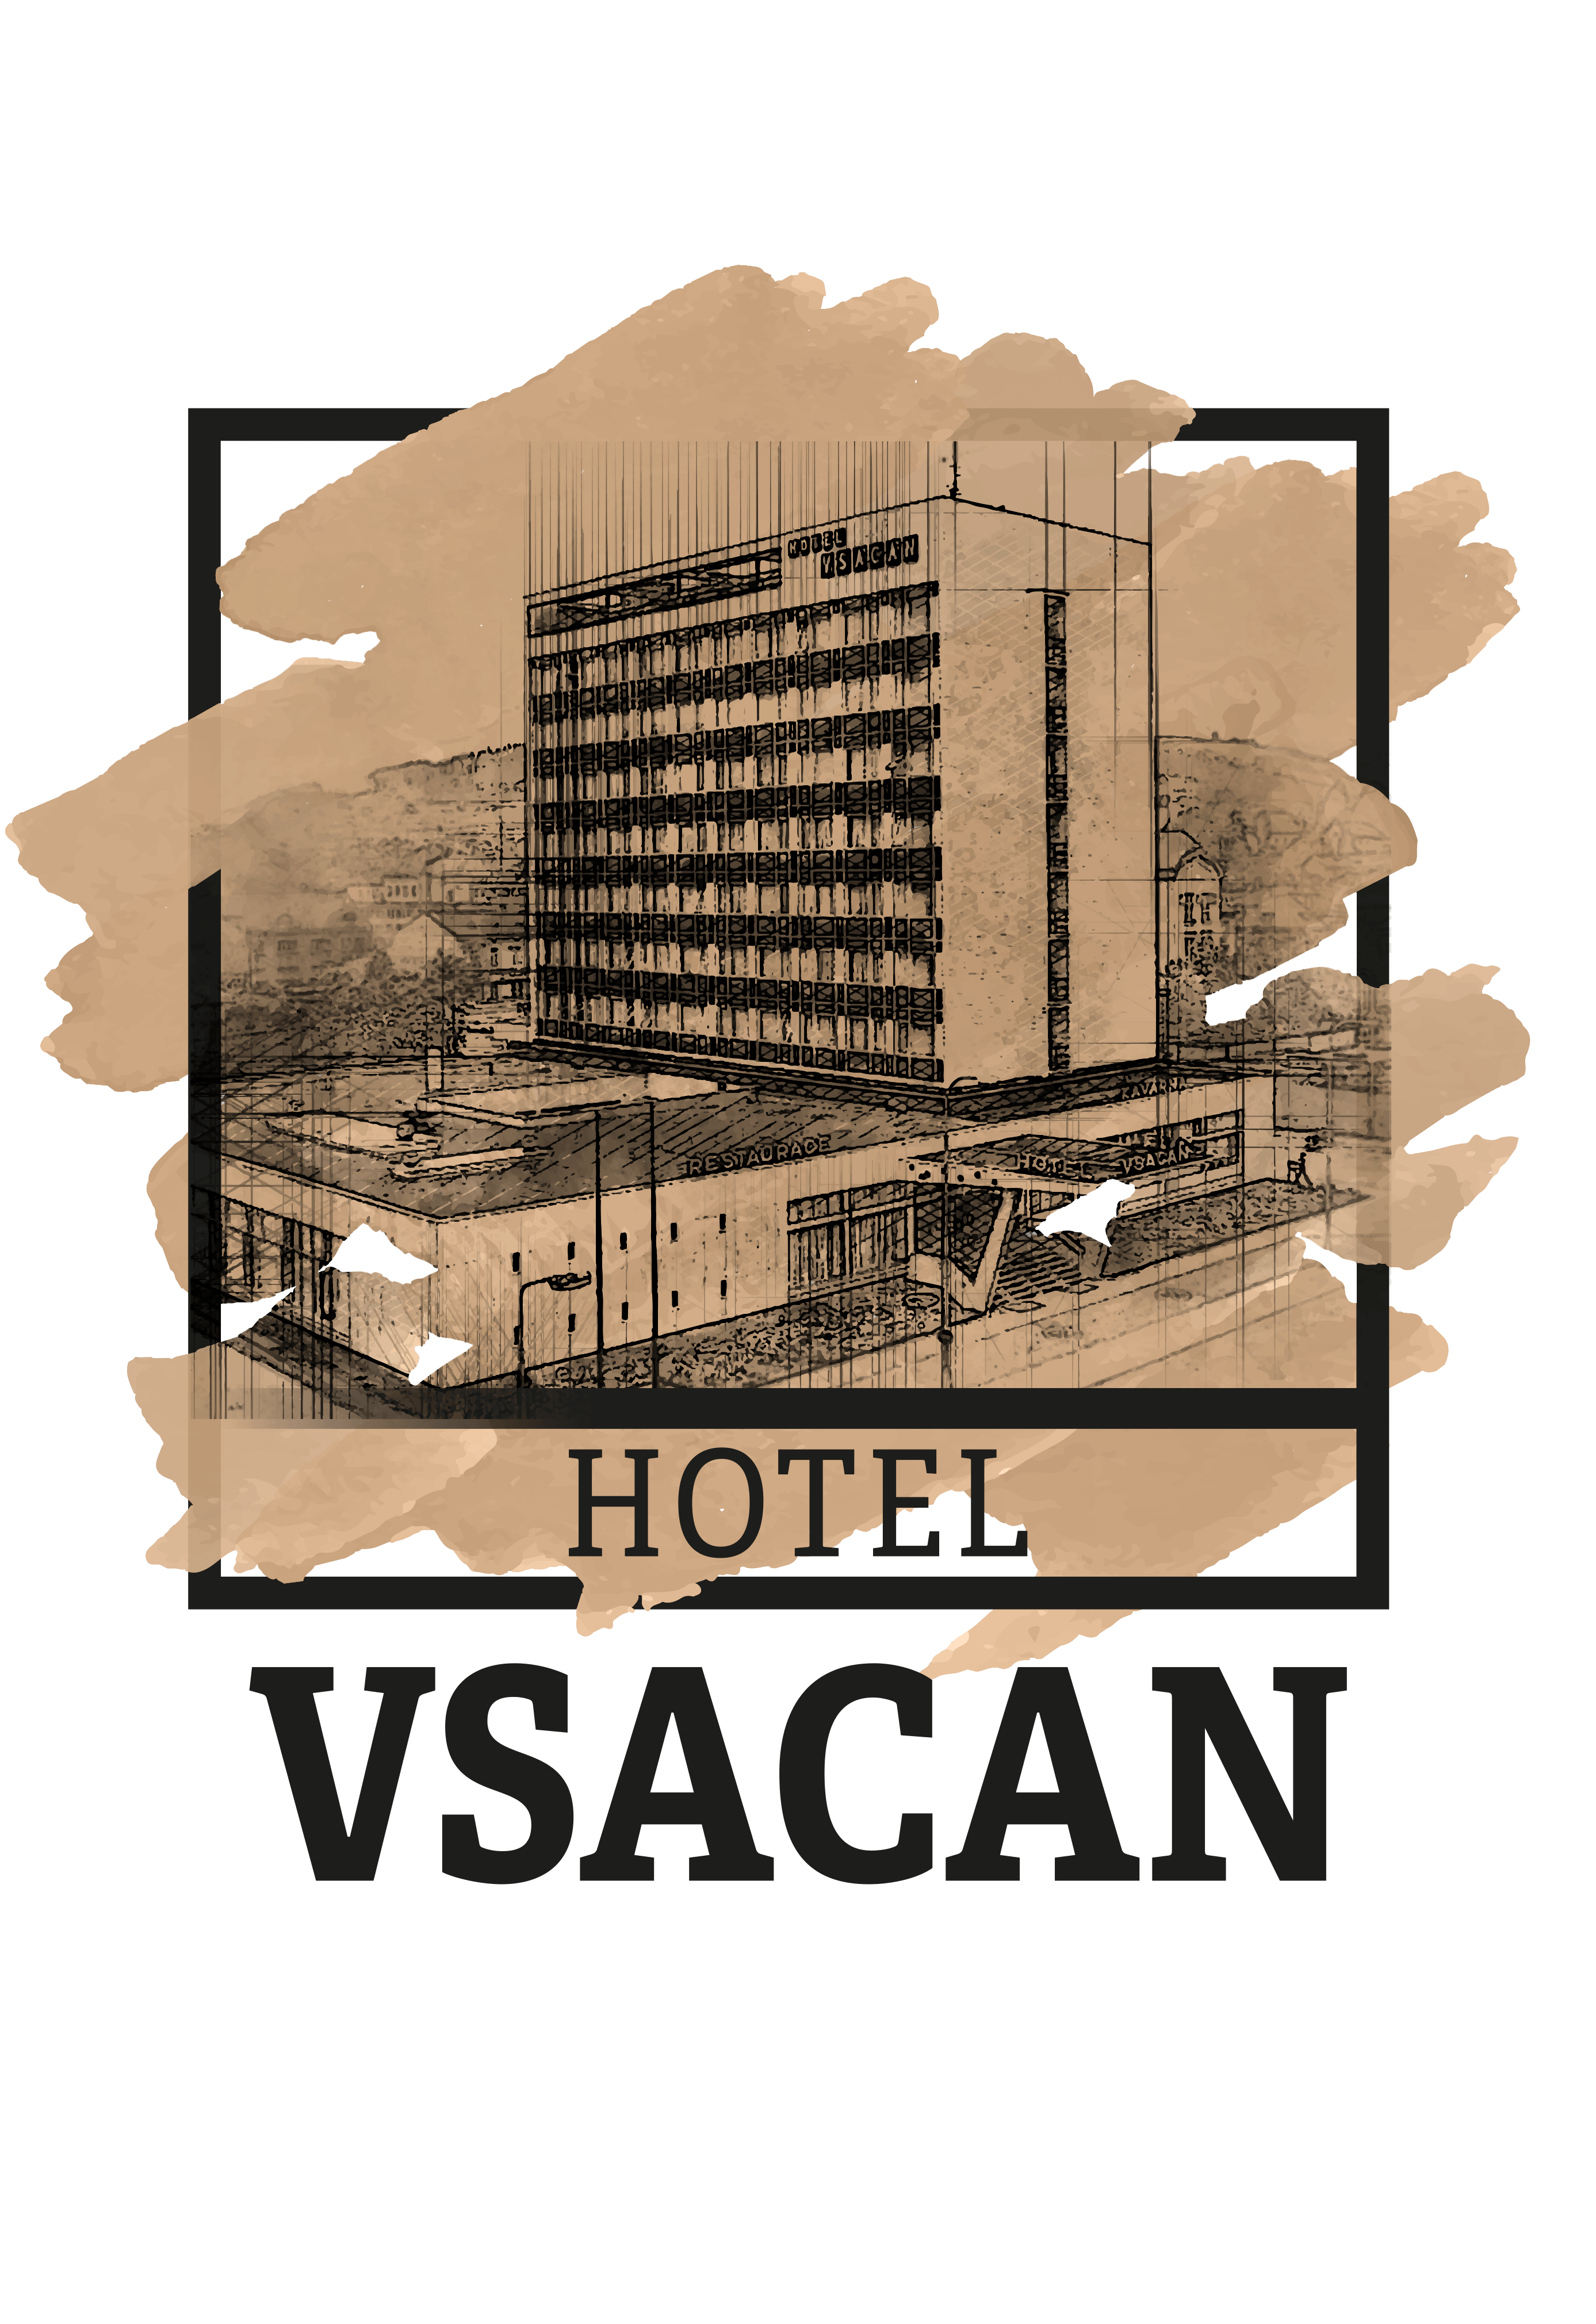 Vsacan